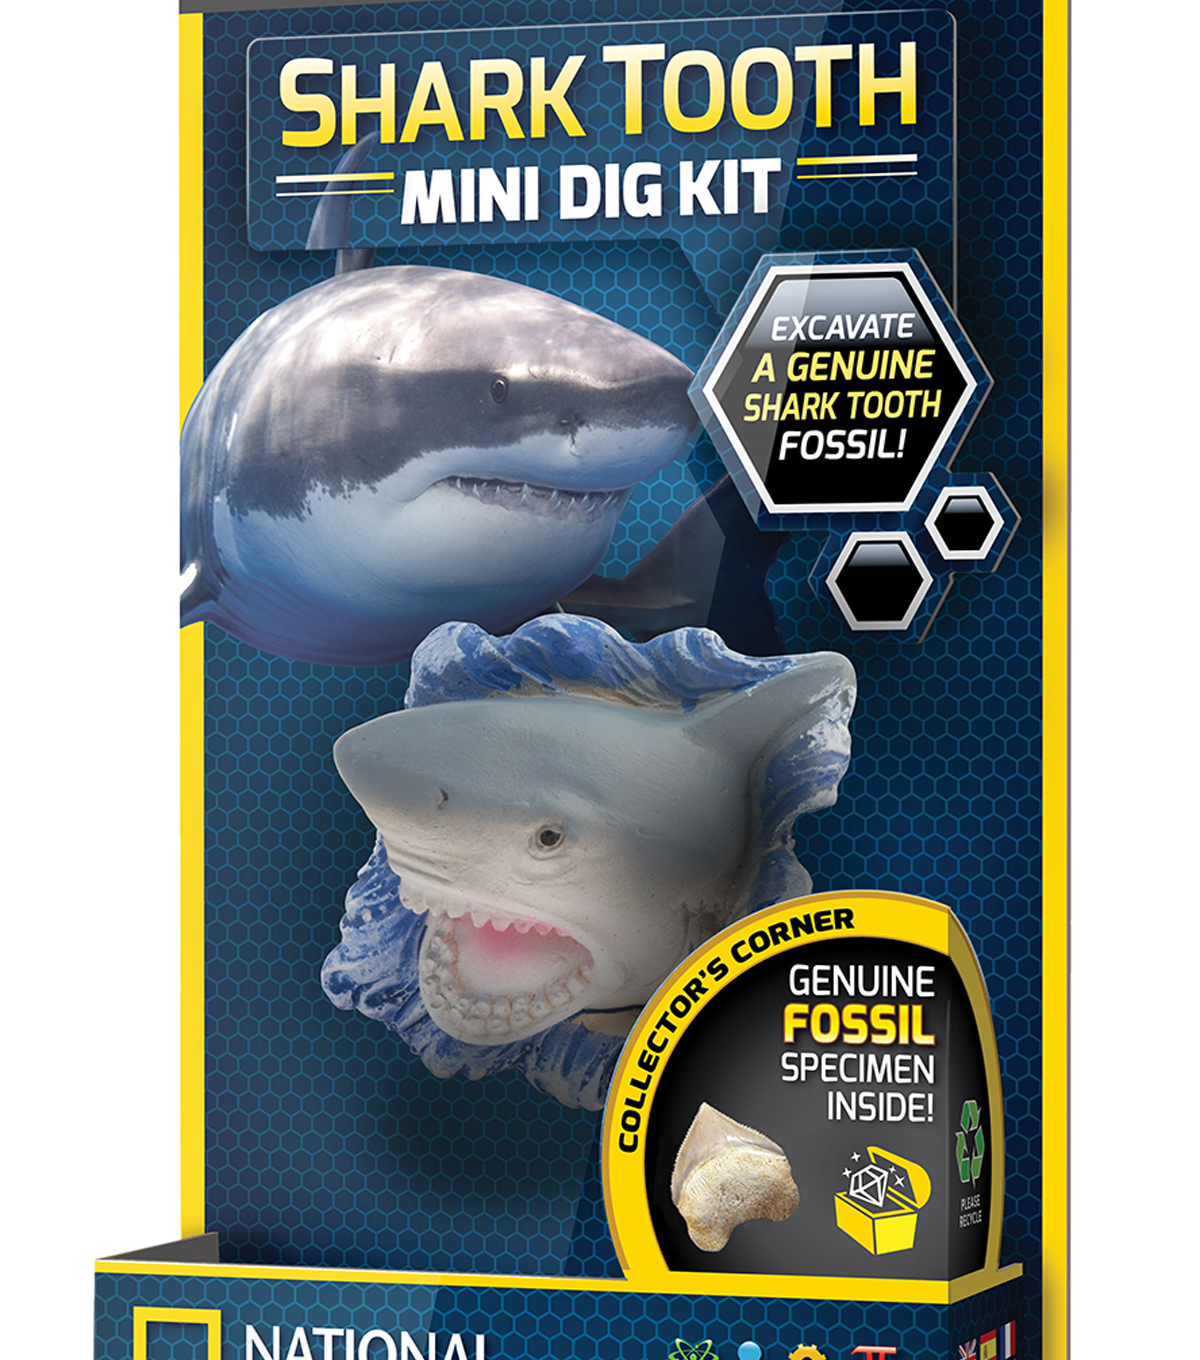 National Geographics Shark Tooth Minidig